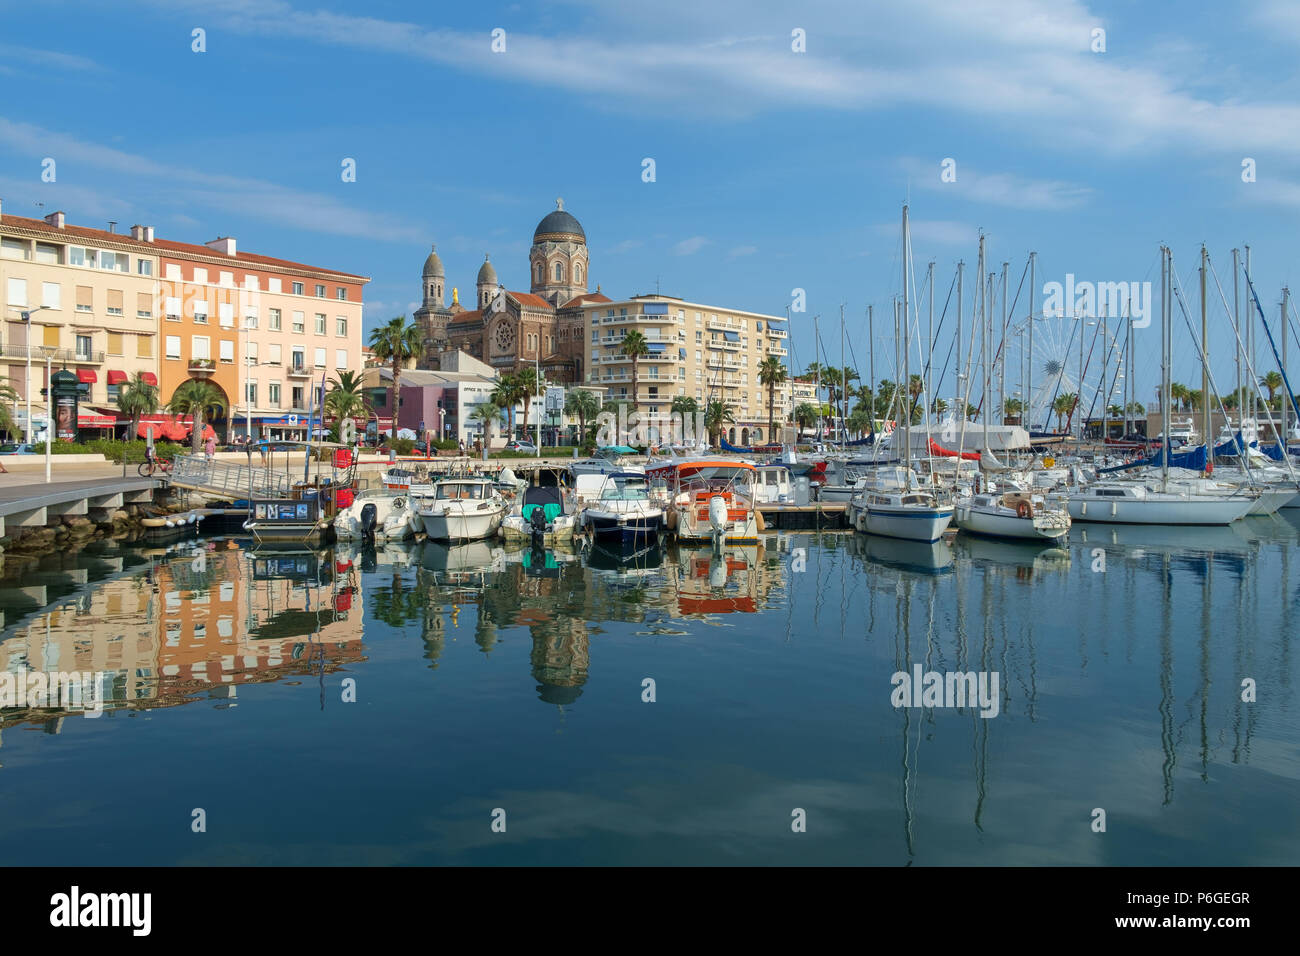 The cathedral, seafront buidings and boats, Saint Raphael, France. - Stock Image